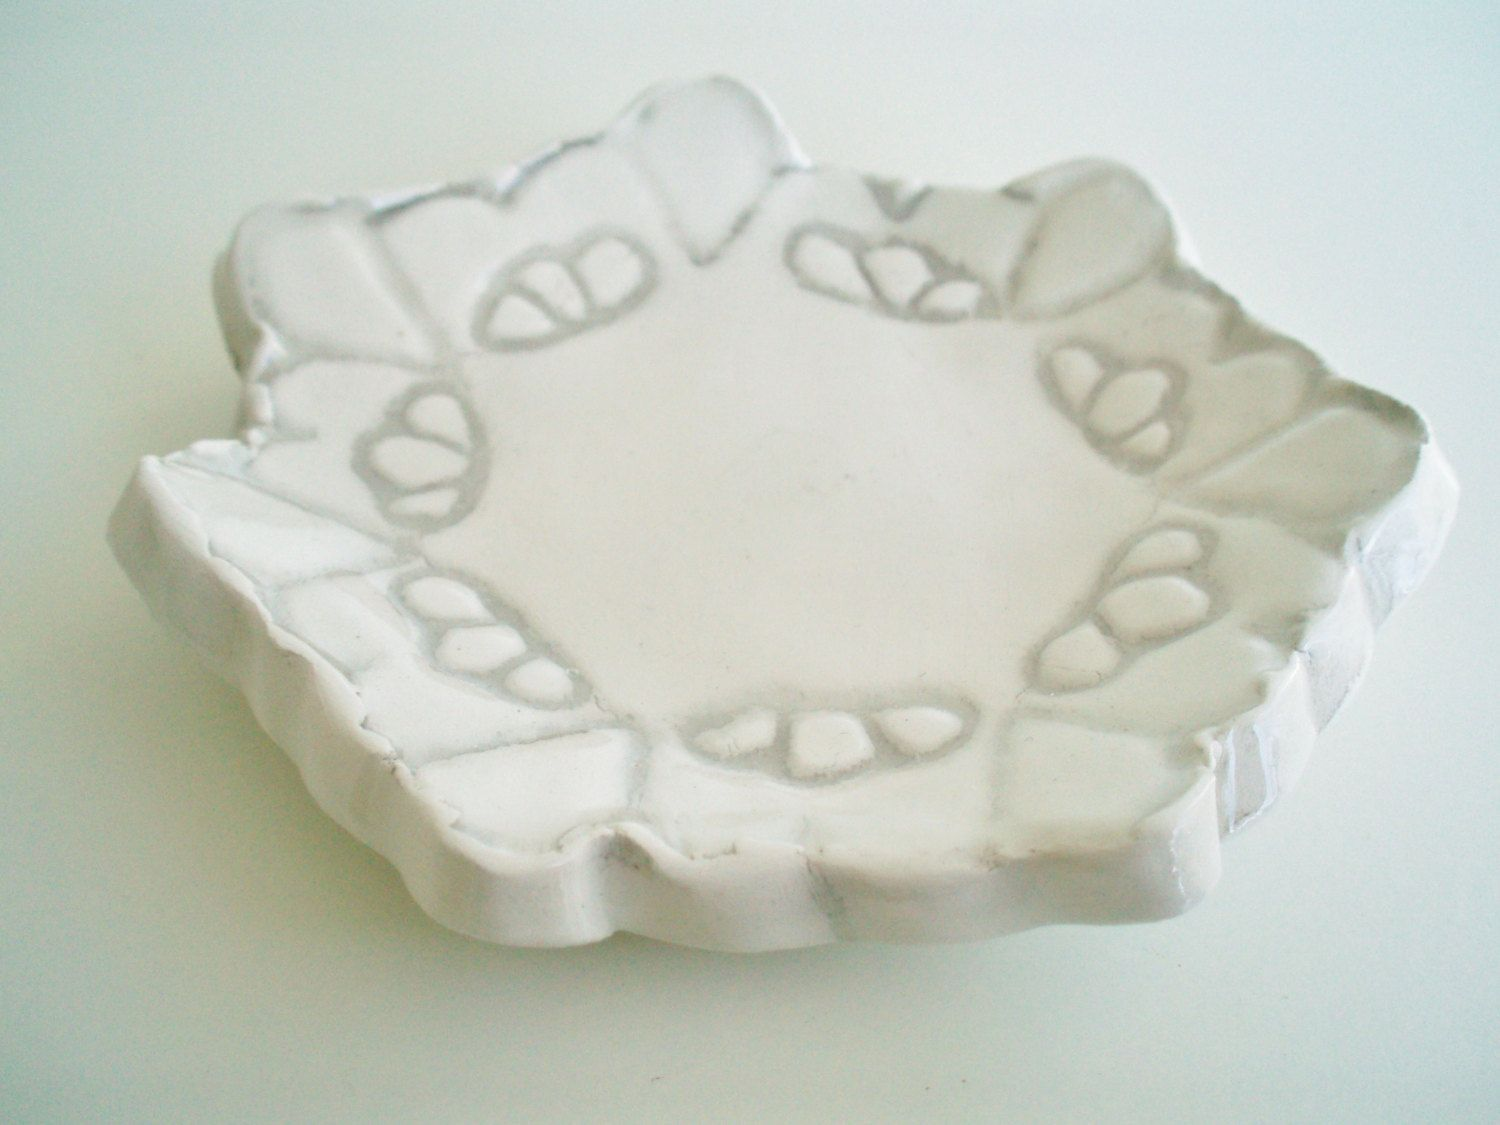 engagement Fused glass dish with silver leaf hearts for rings soap trinkets Valentines jewelry